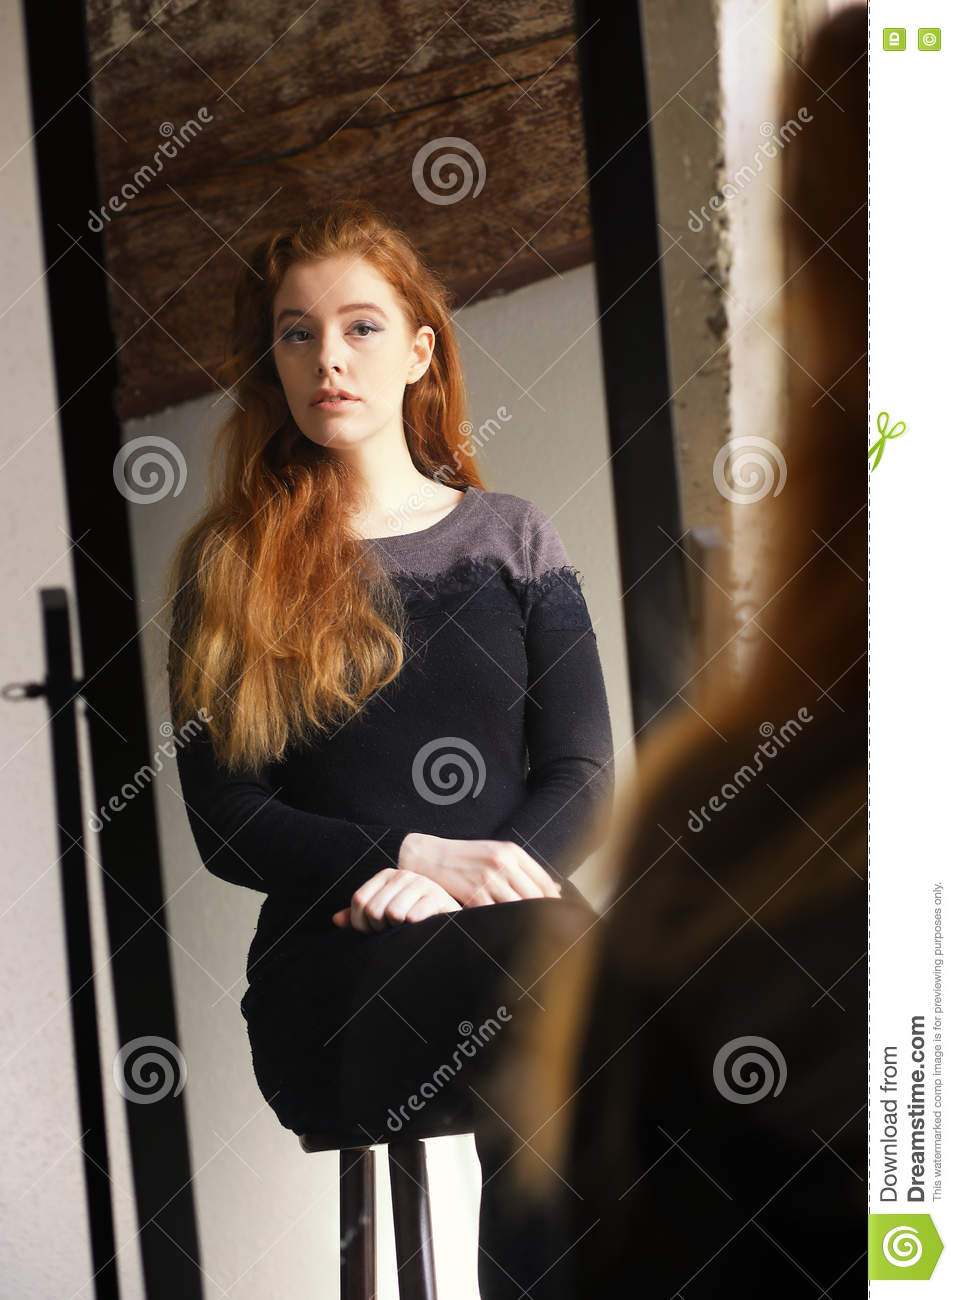 Red Haired Woman In Black Dress Looking At Herself In A